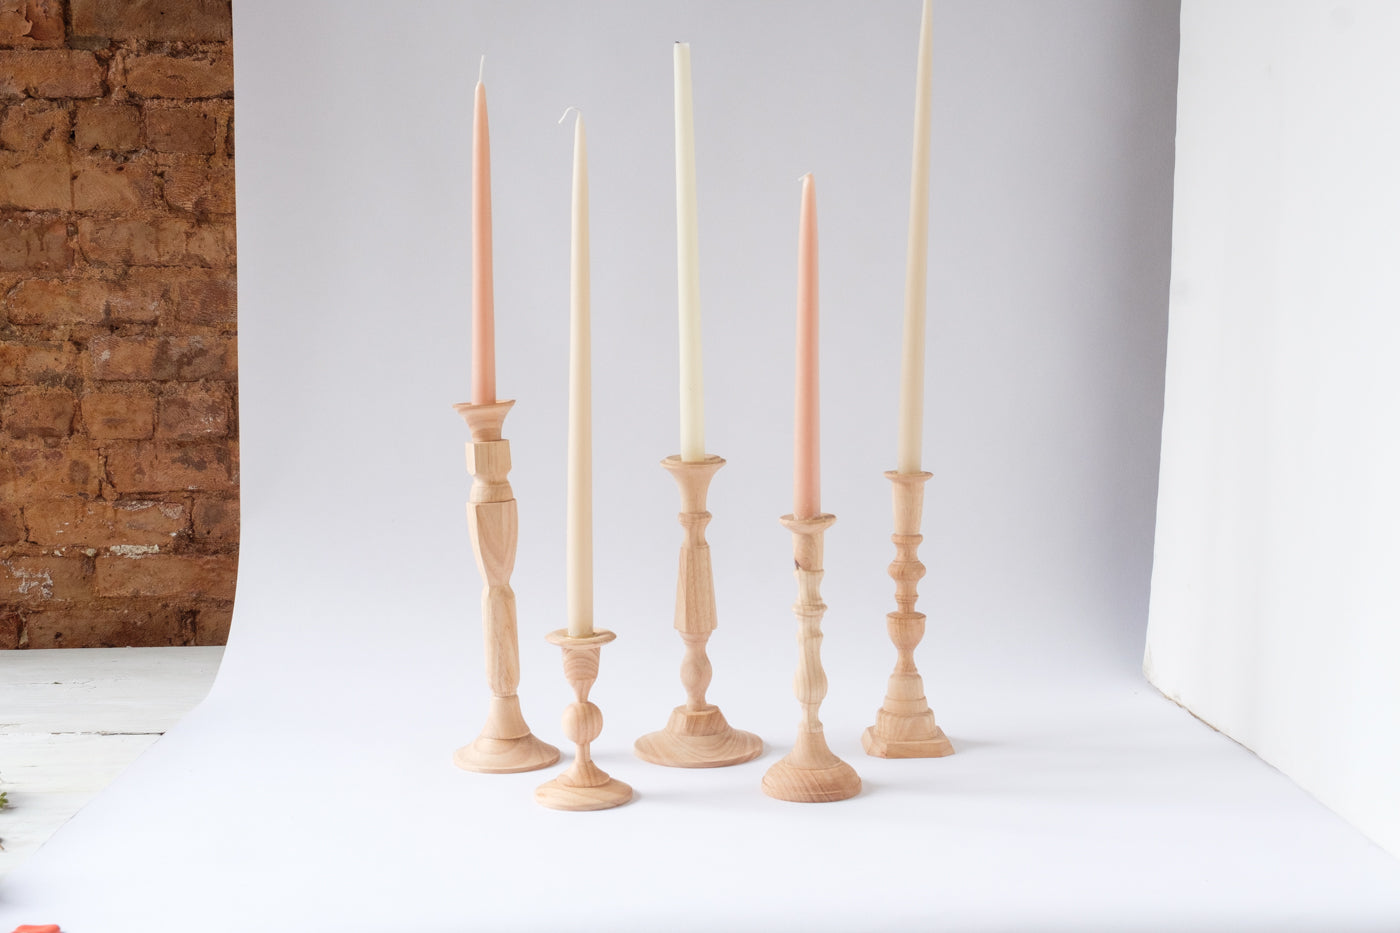 Georgian Wooden Candlesticks - Élan Flowers